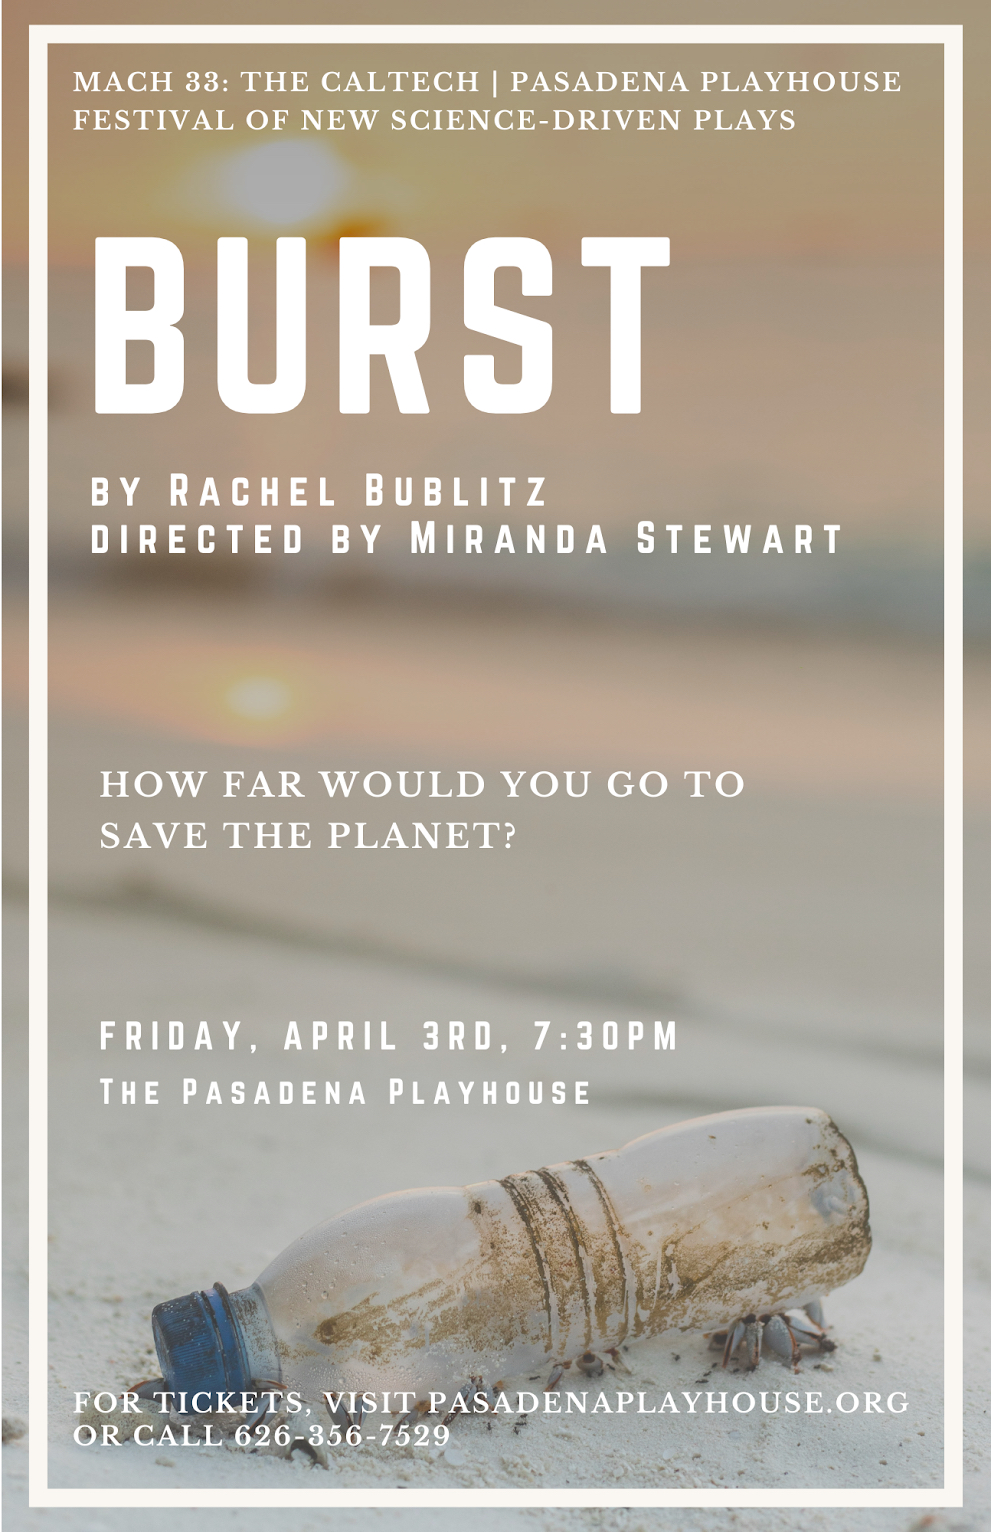 Poster for BURST in MACH 33 Festival of New Science-Driven Plays.